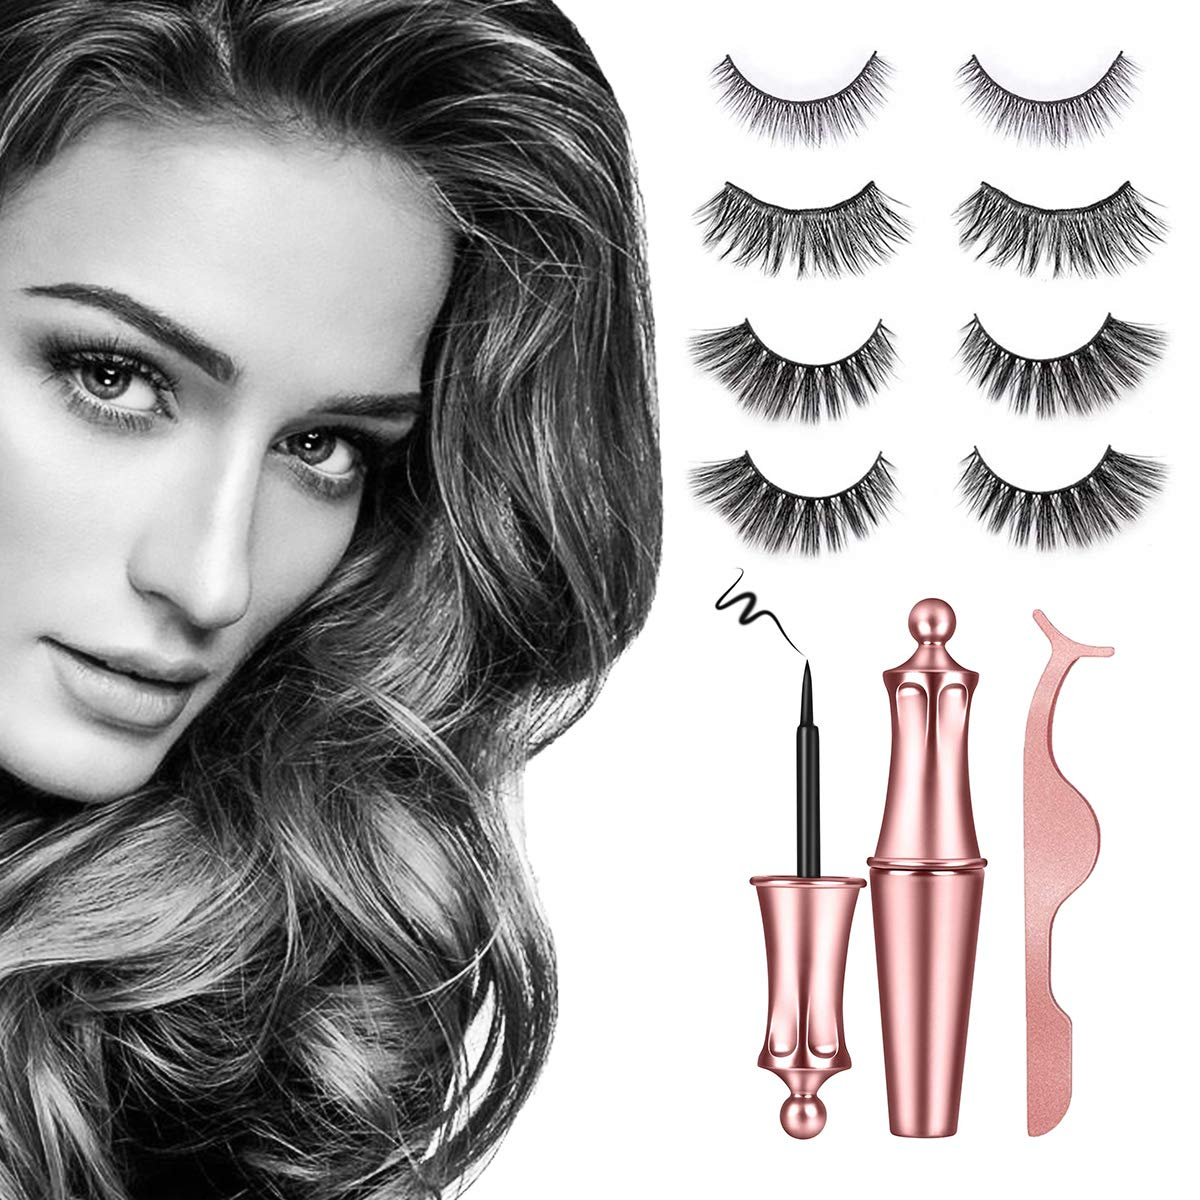 Magnetic Eyelashes with Eyeliner - Magnetic Eyeliner and Magnetic Eyelash Kit - Eyelashes With Natural Look - Comes With Applicator - No Glue Needed(4 Pairs)